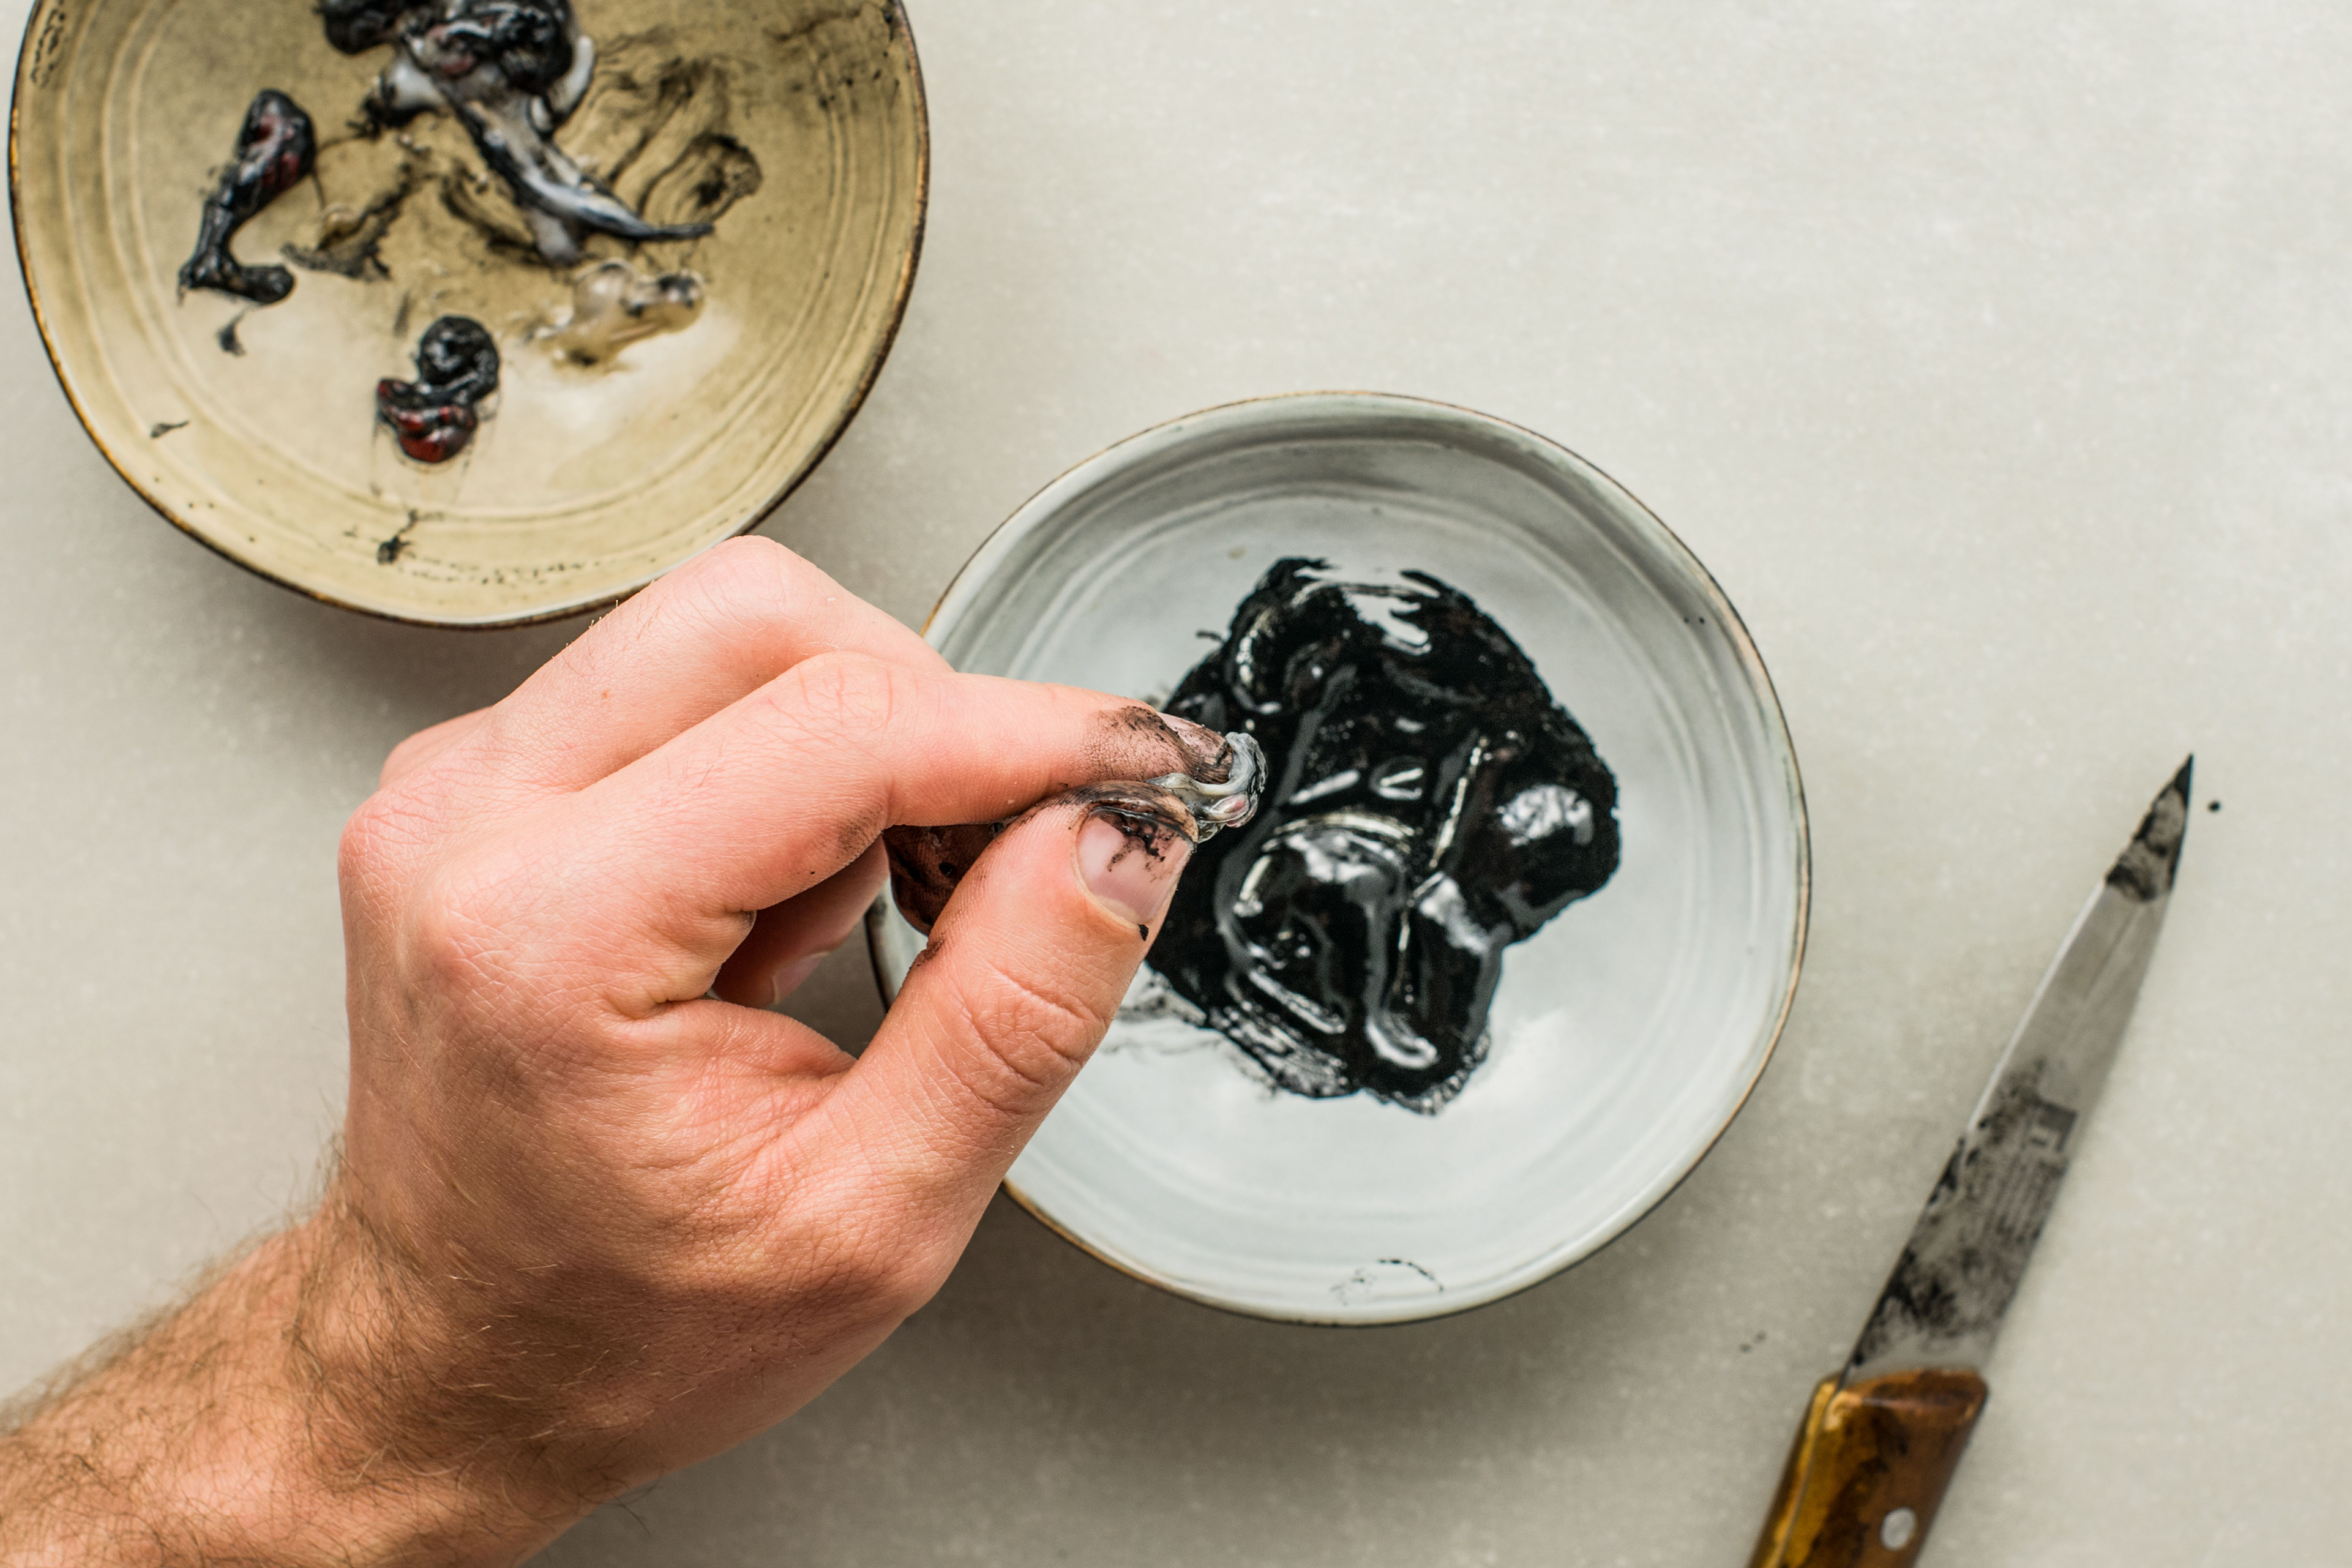 Squid ink collected in a small bowl